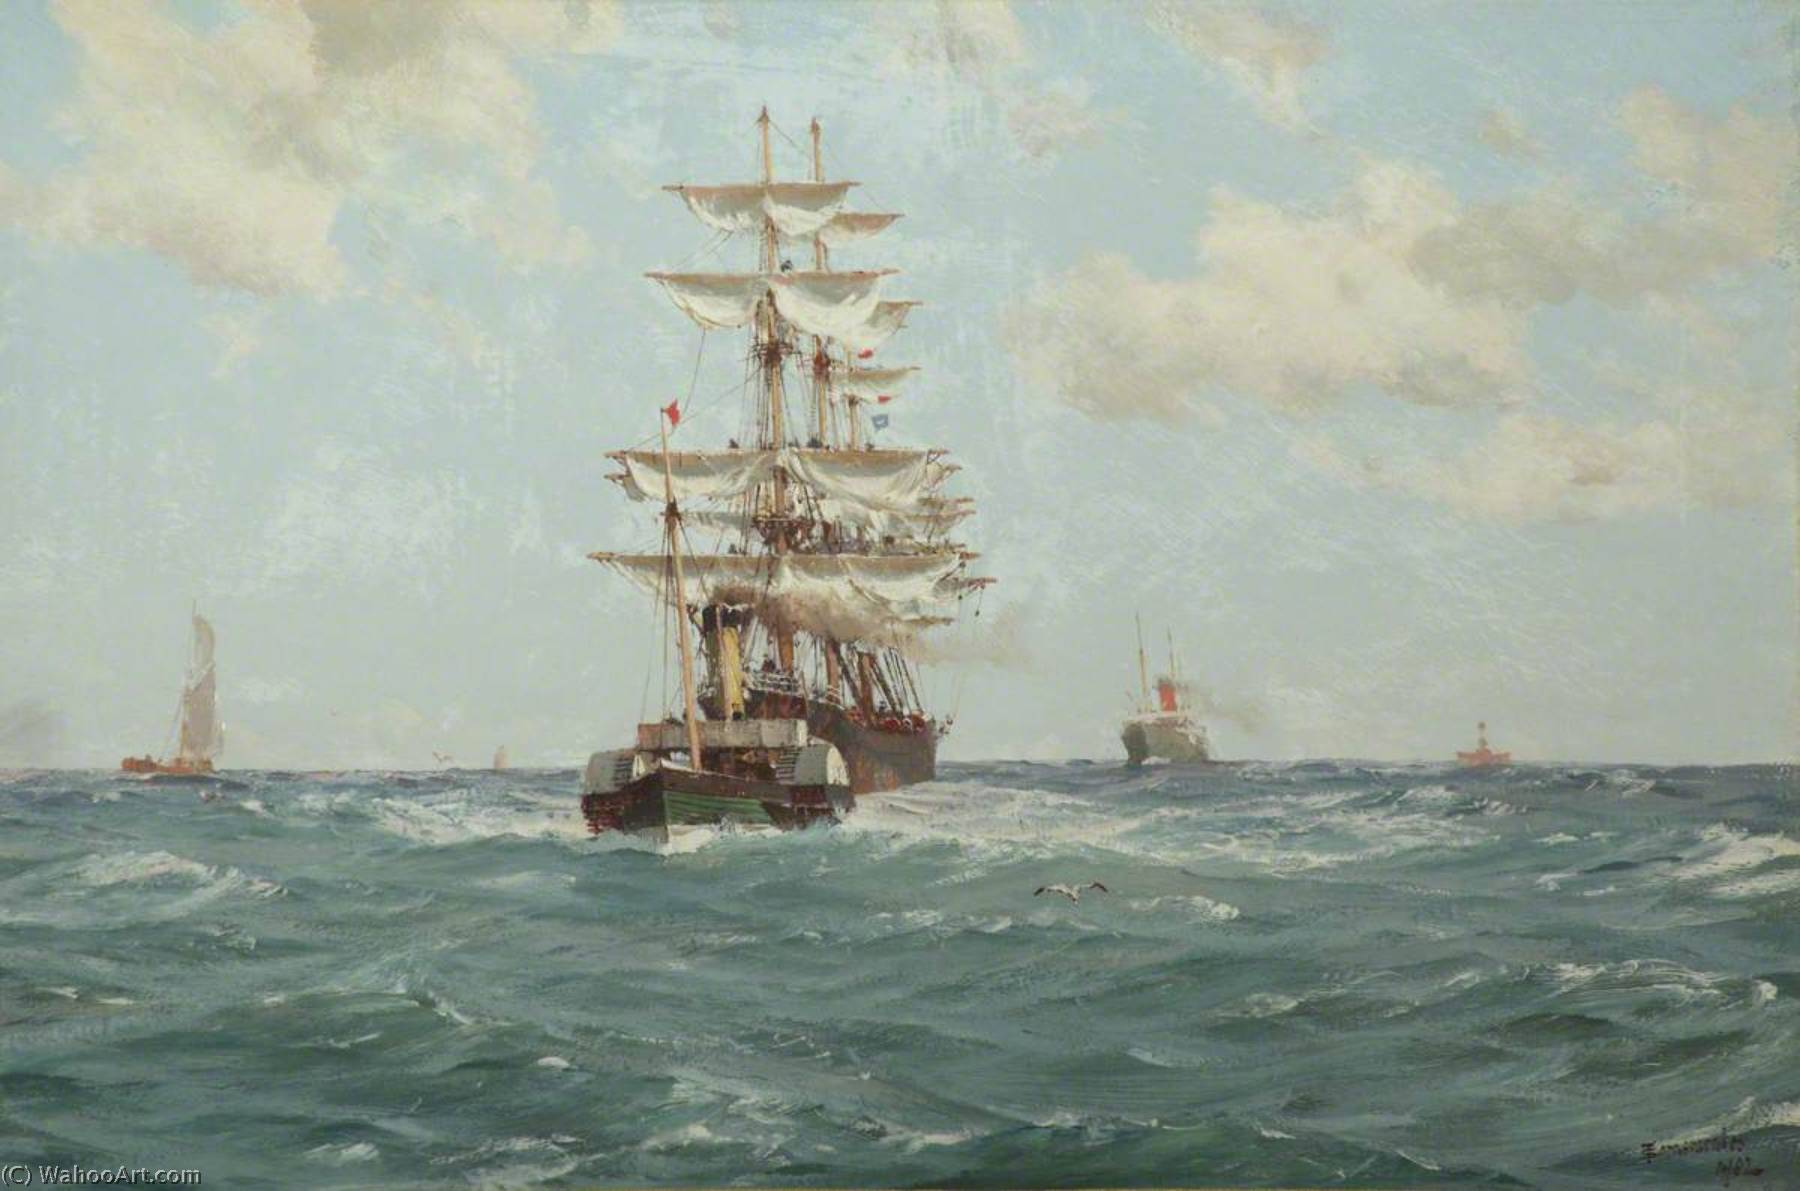 Paddle Tug Towing a Full Rigged Ship, Oil On Canvas by Thomas Jacques Somerscales (1842-1927)